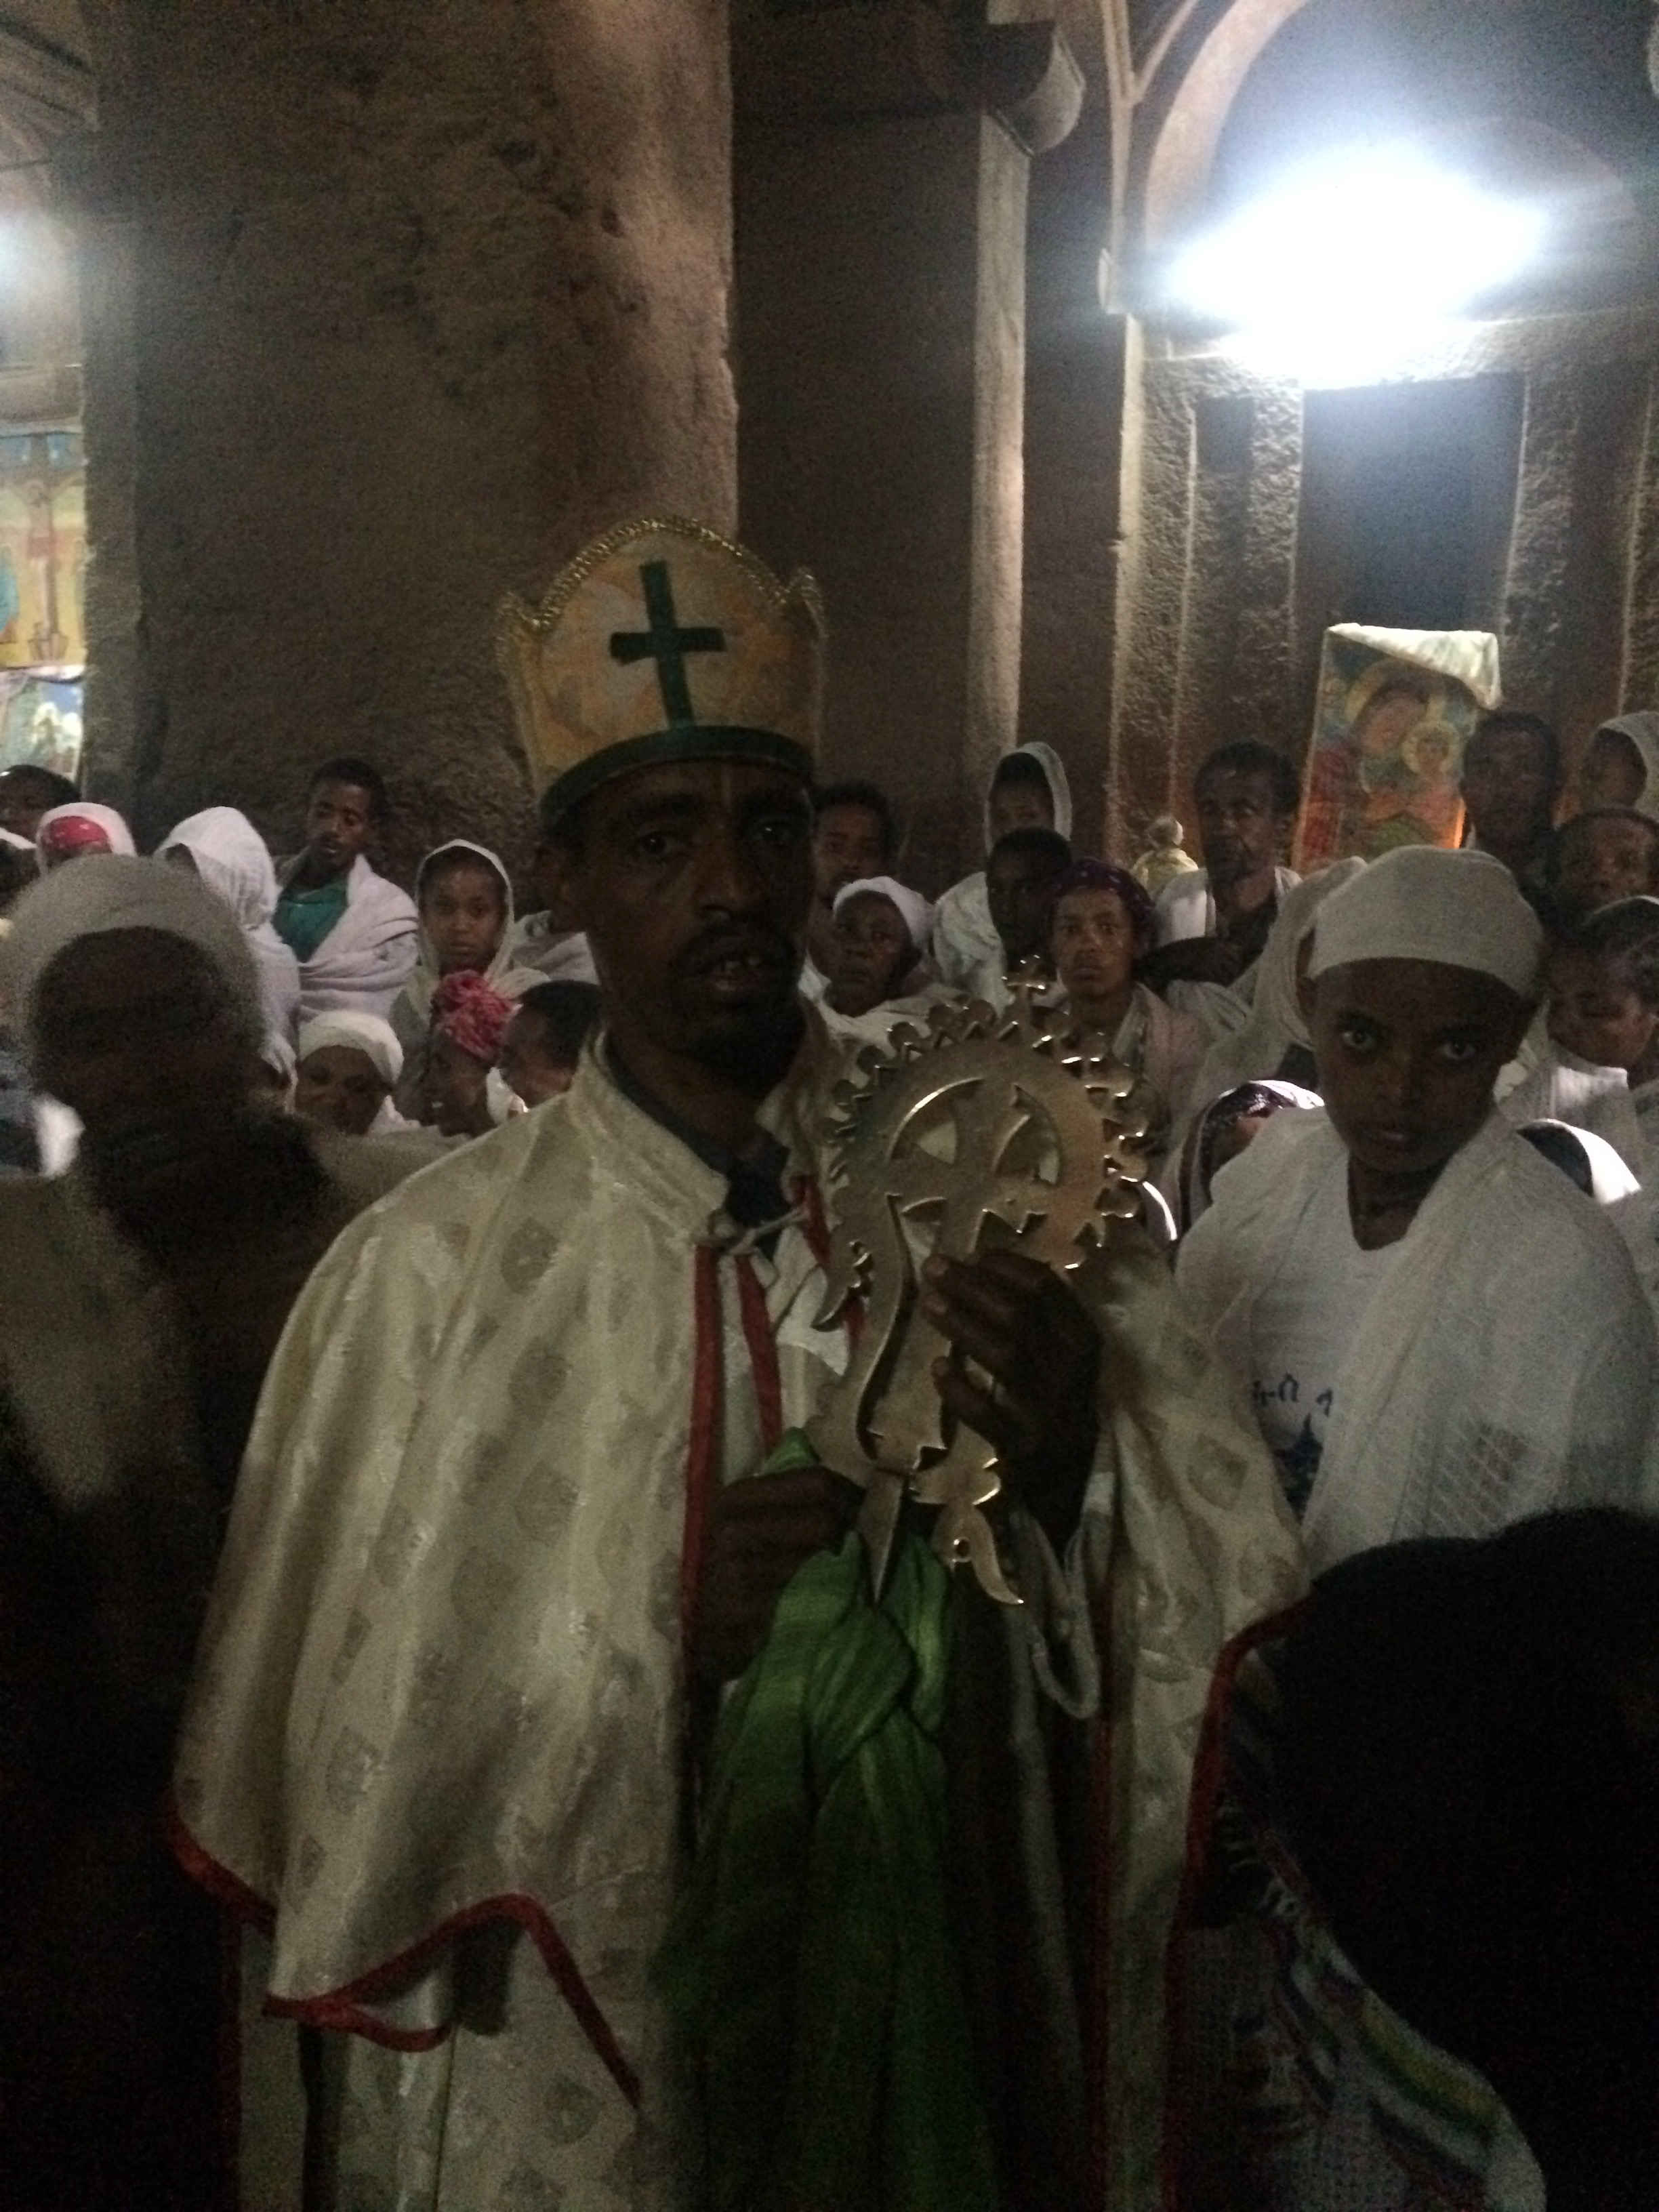 The priest giving blessings to the worshippers - and me and Jeff.